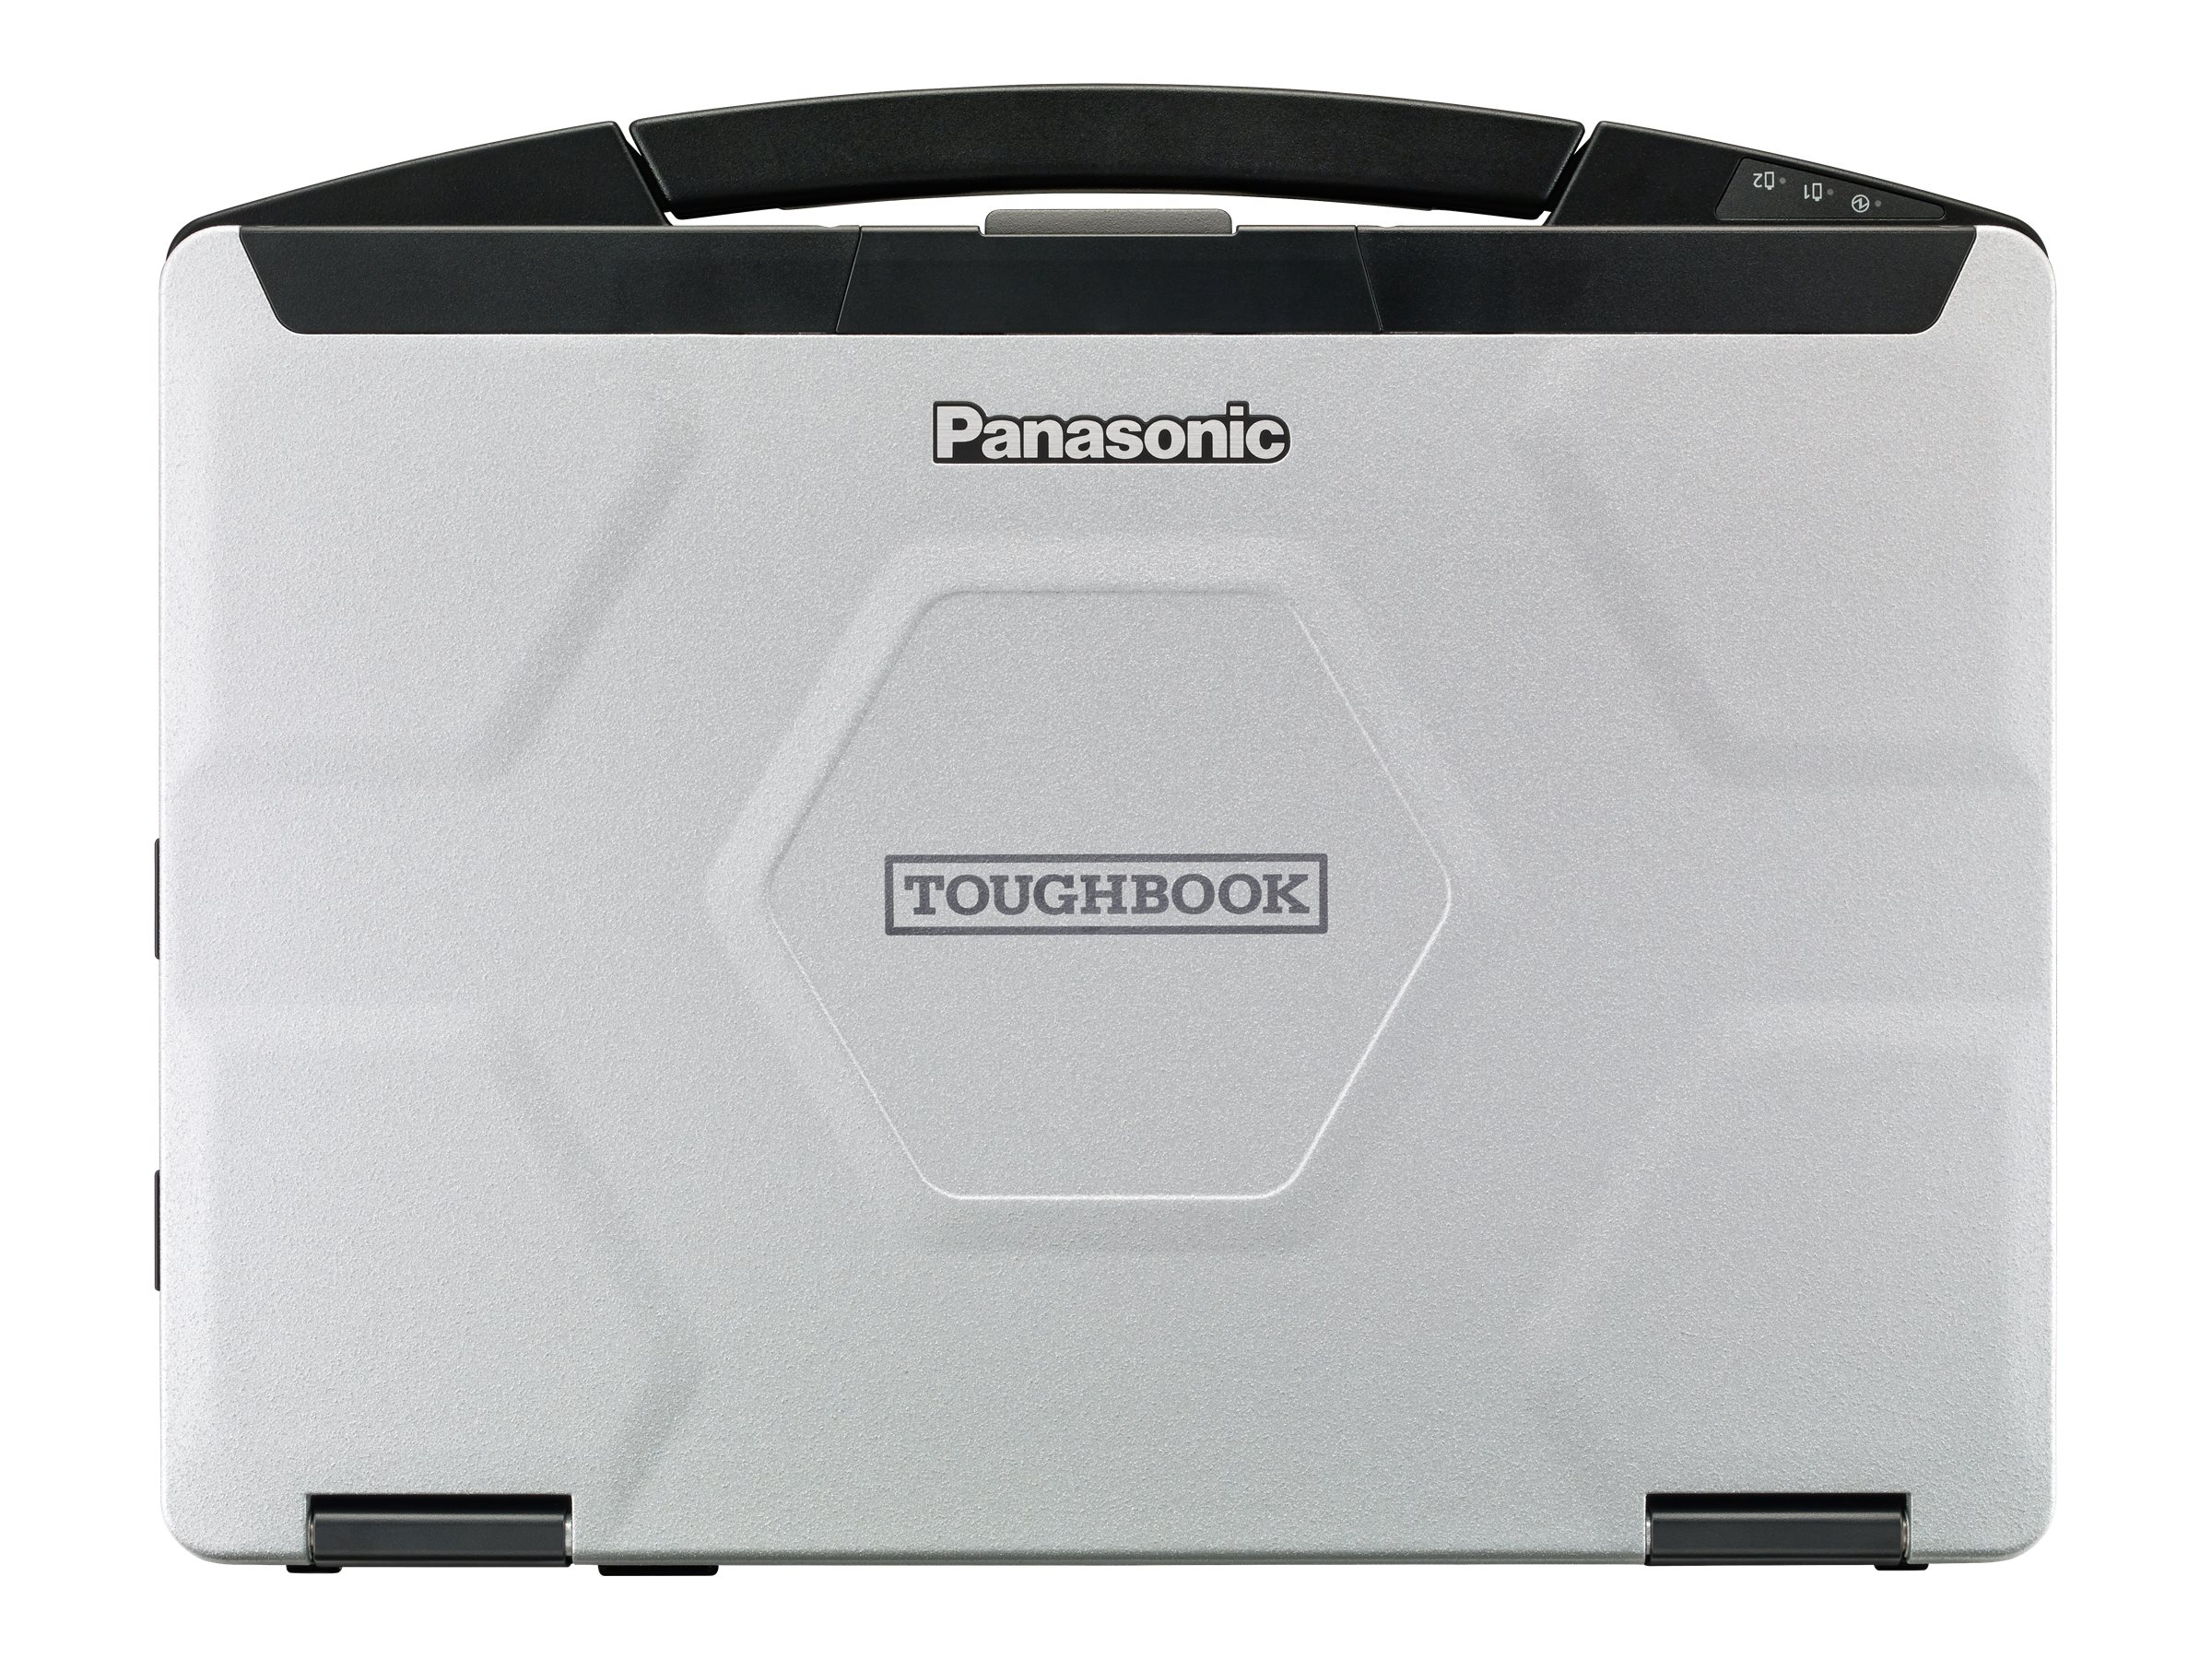 Panasonic Toughbook 54 2.4GHz Core i5 14in display, CF-54F9787KM